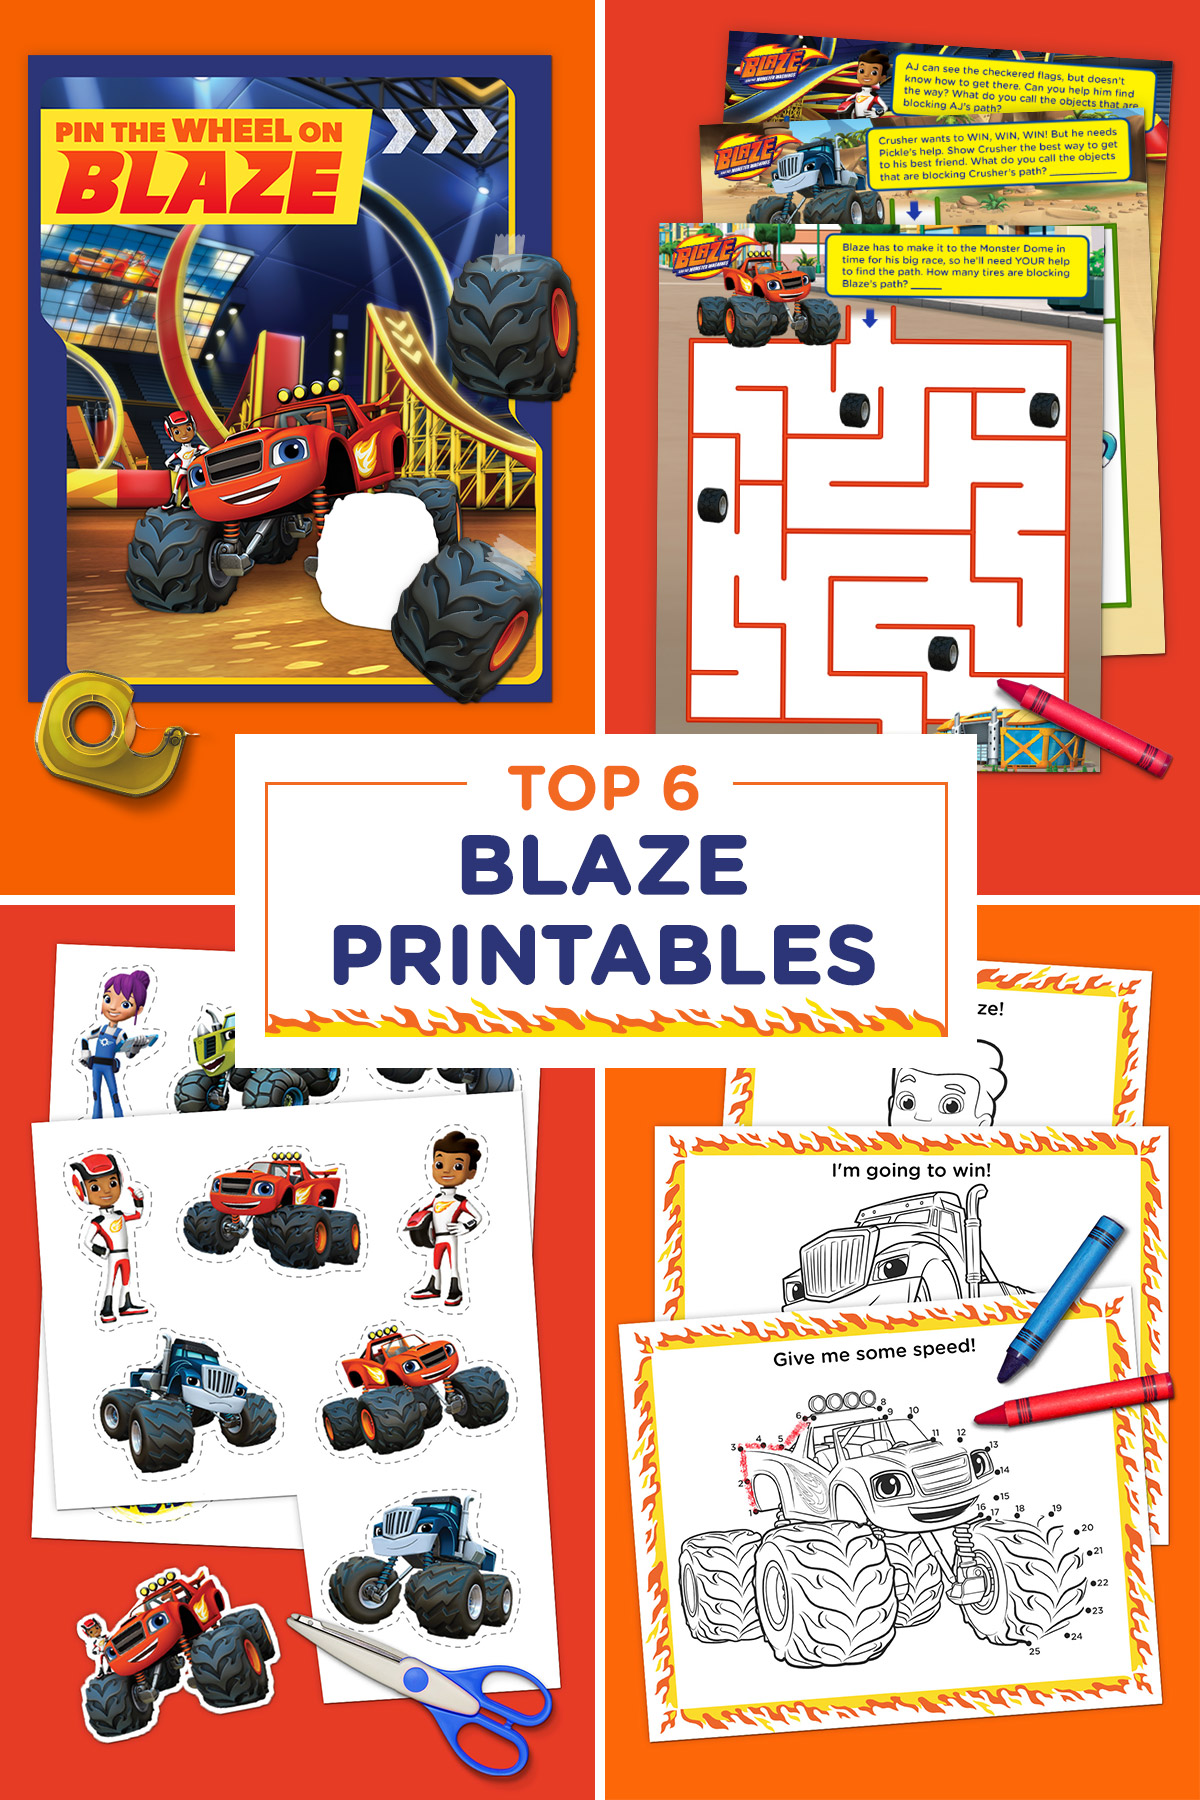 Top 6 Blaze Printables of All Time